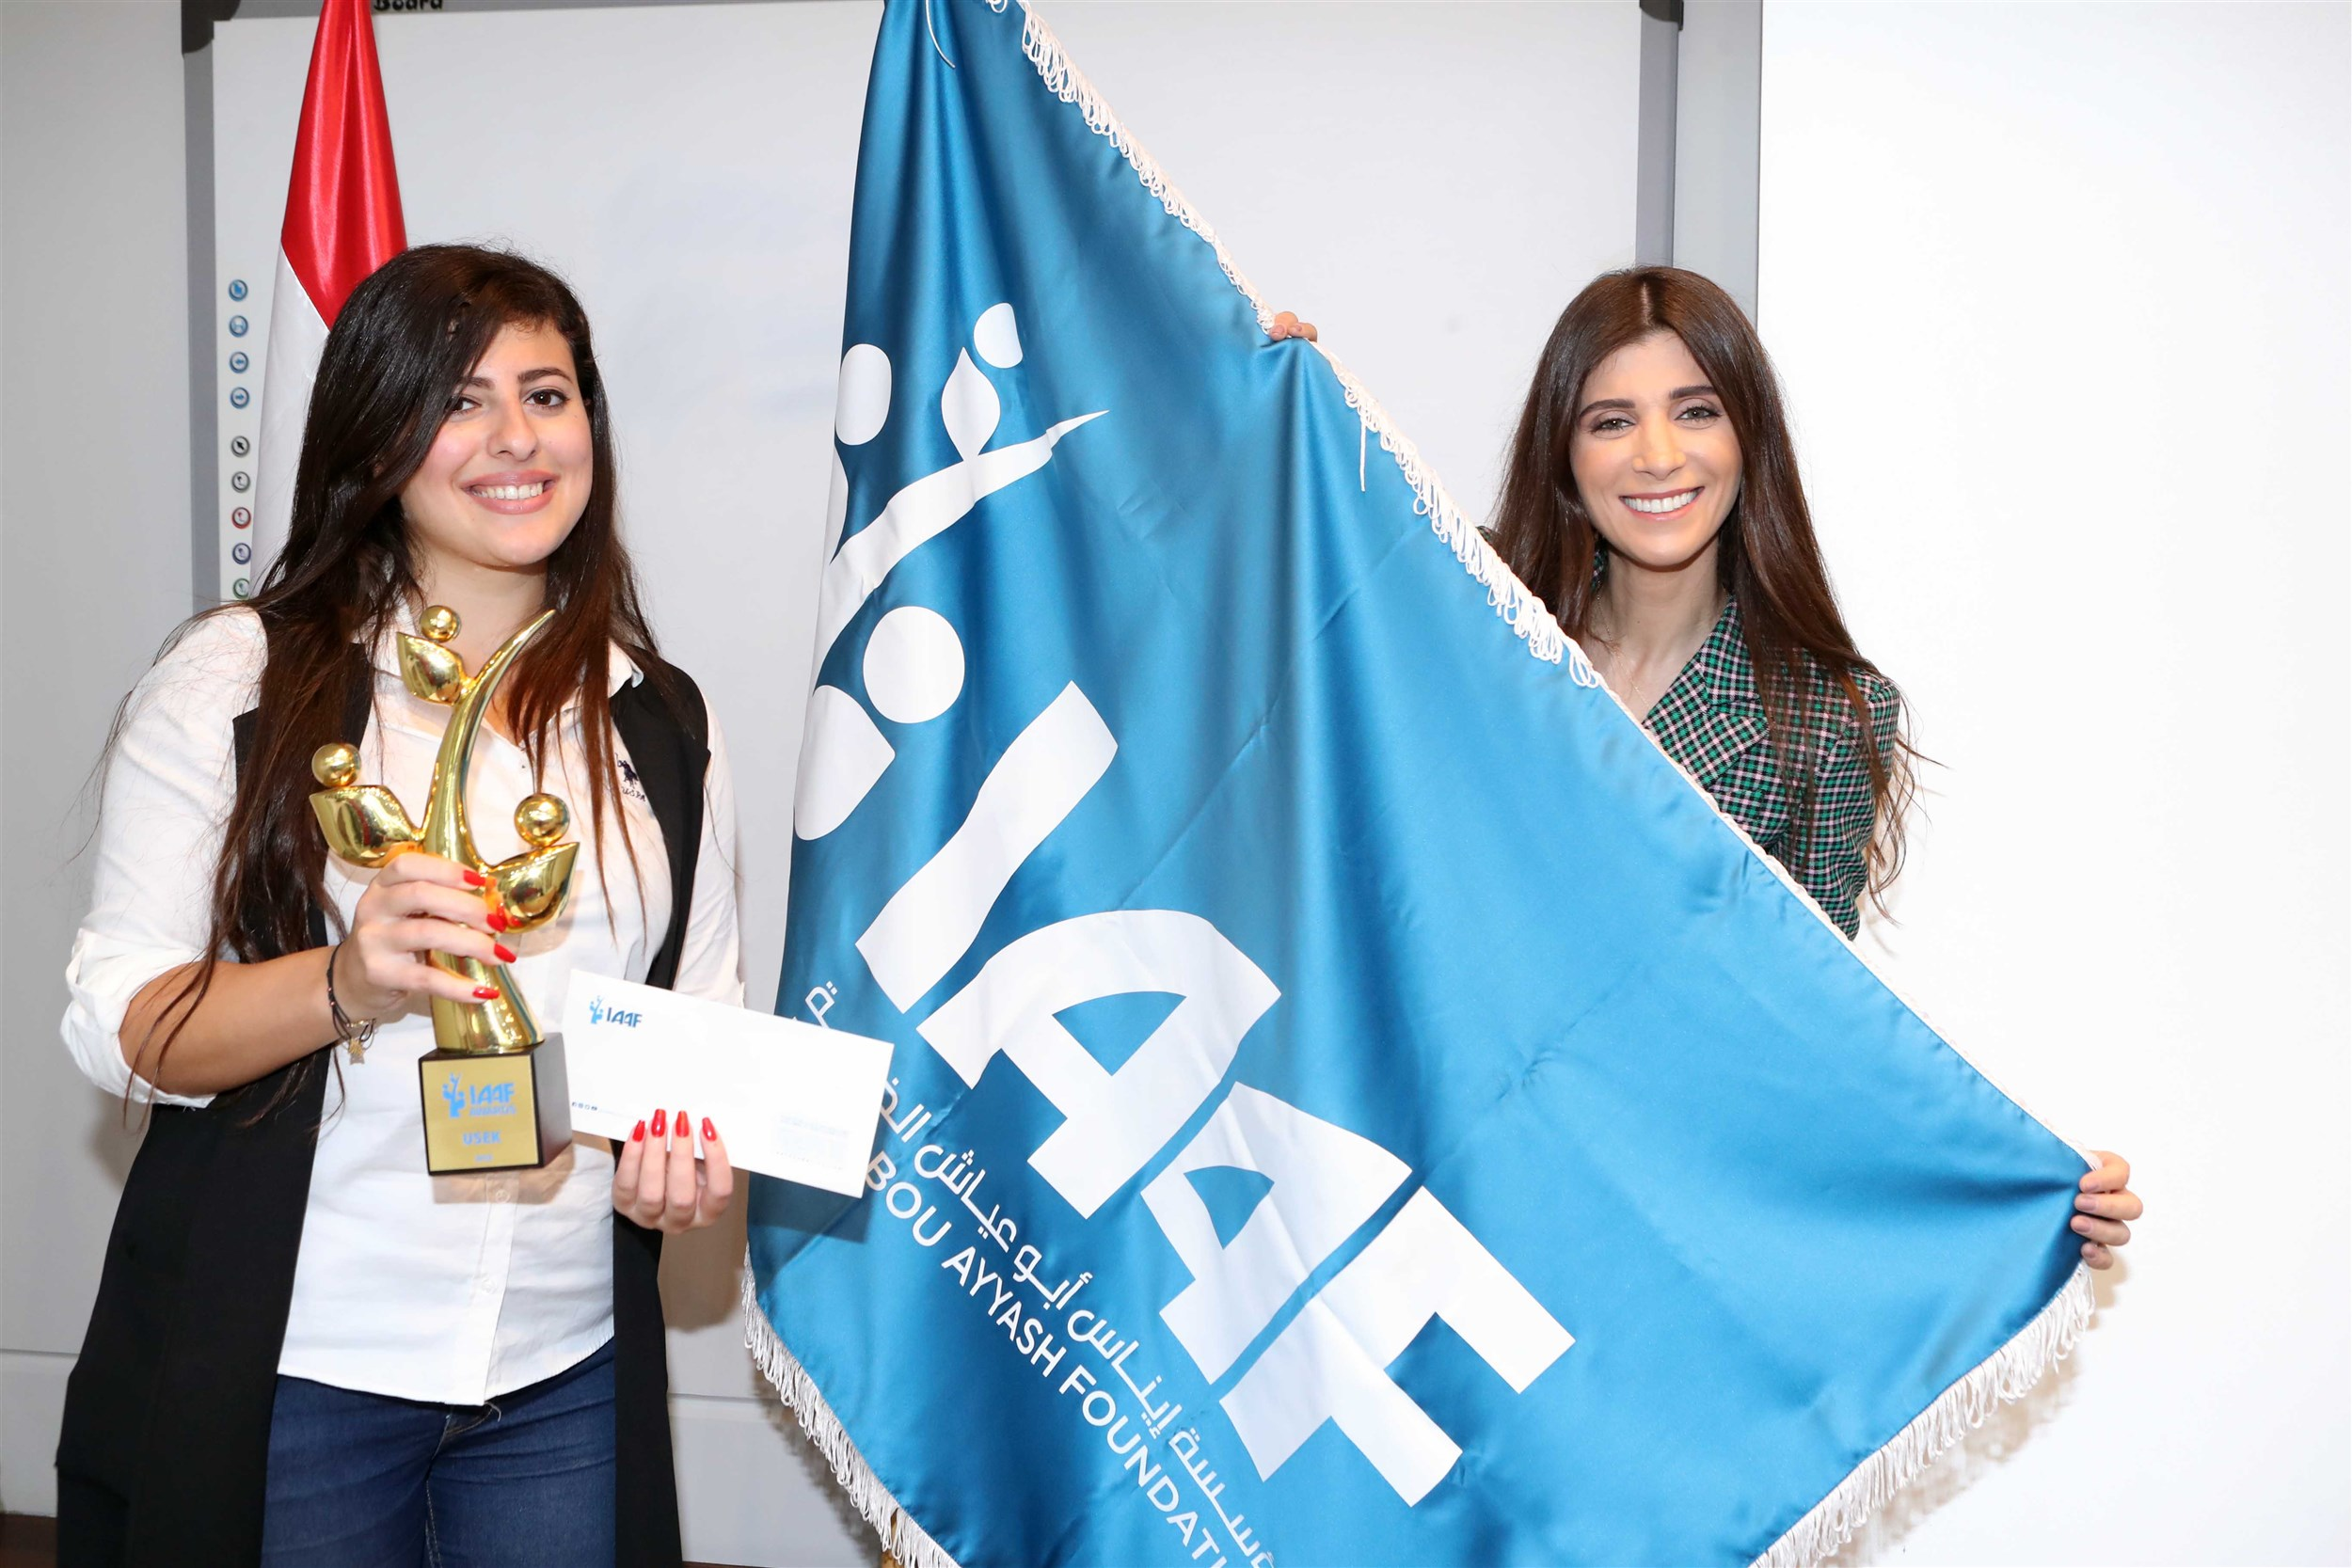 the winner of the  holy spitiy univesity of kaslik  sarah abi abdallah delivering her prize and trophy, because she dared to dream!